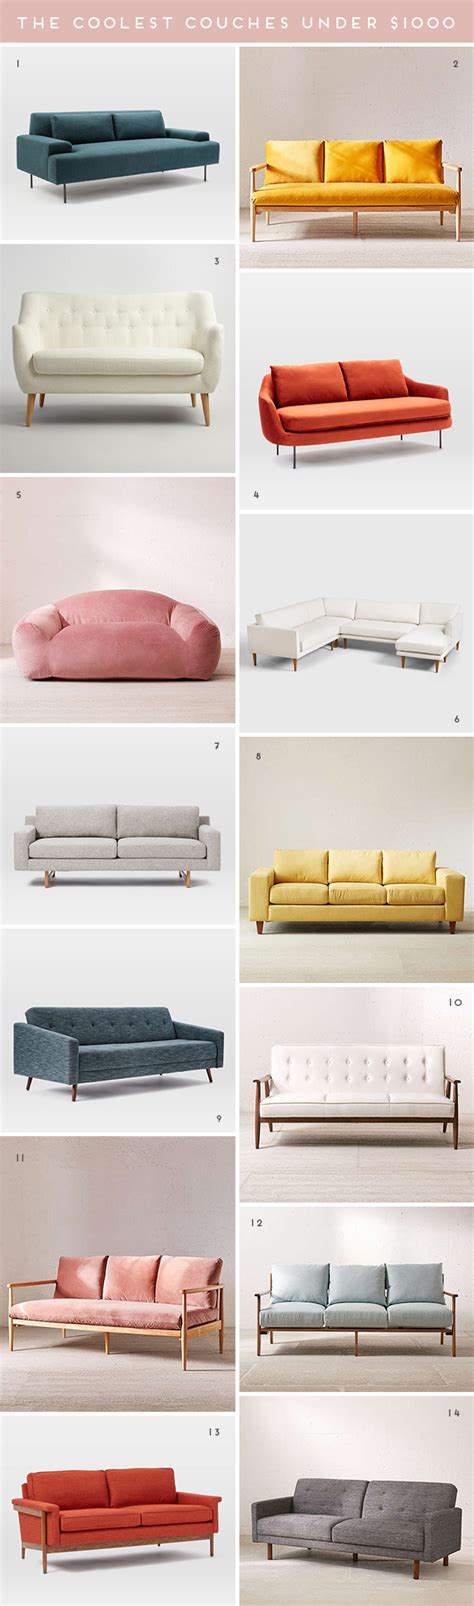 coolest couches potato the coolest couches 1 000 paper and